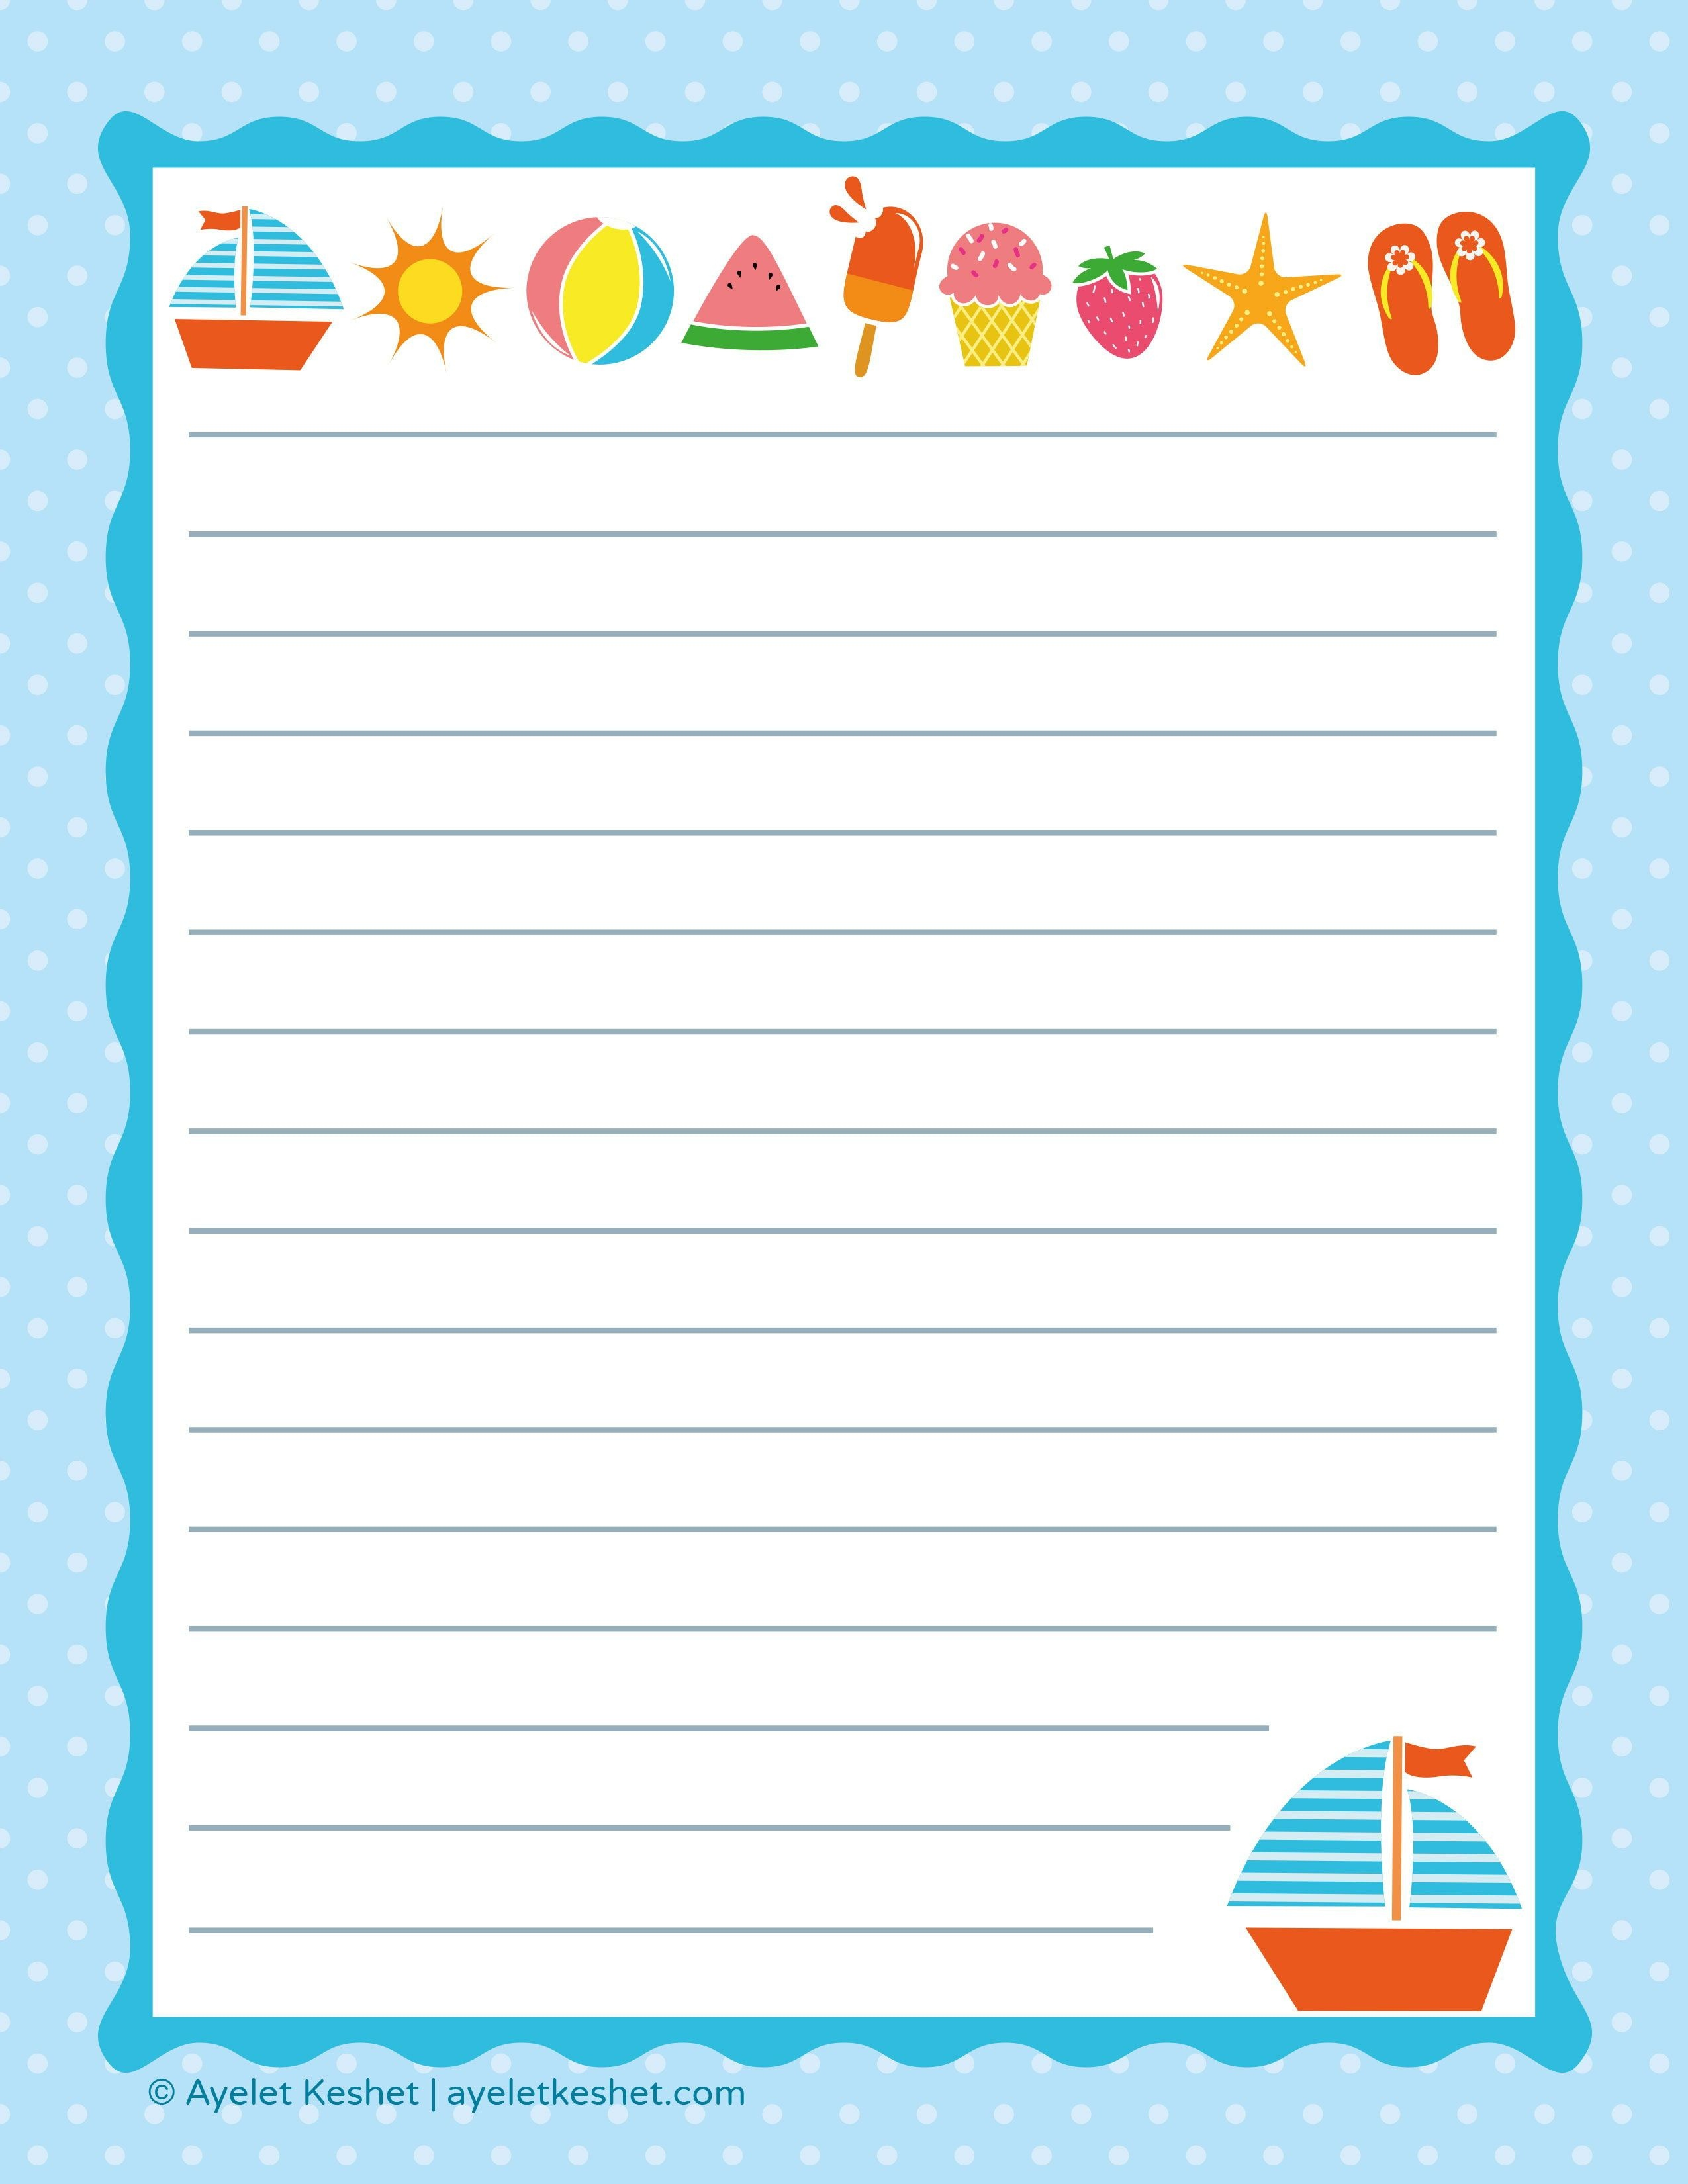 Free Printable Letter Paper | Printables To Go | Printable Letters - Free Printable Summer Borders